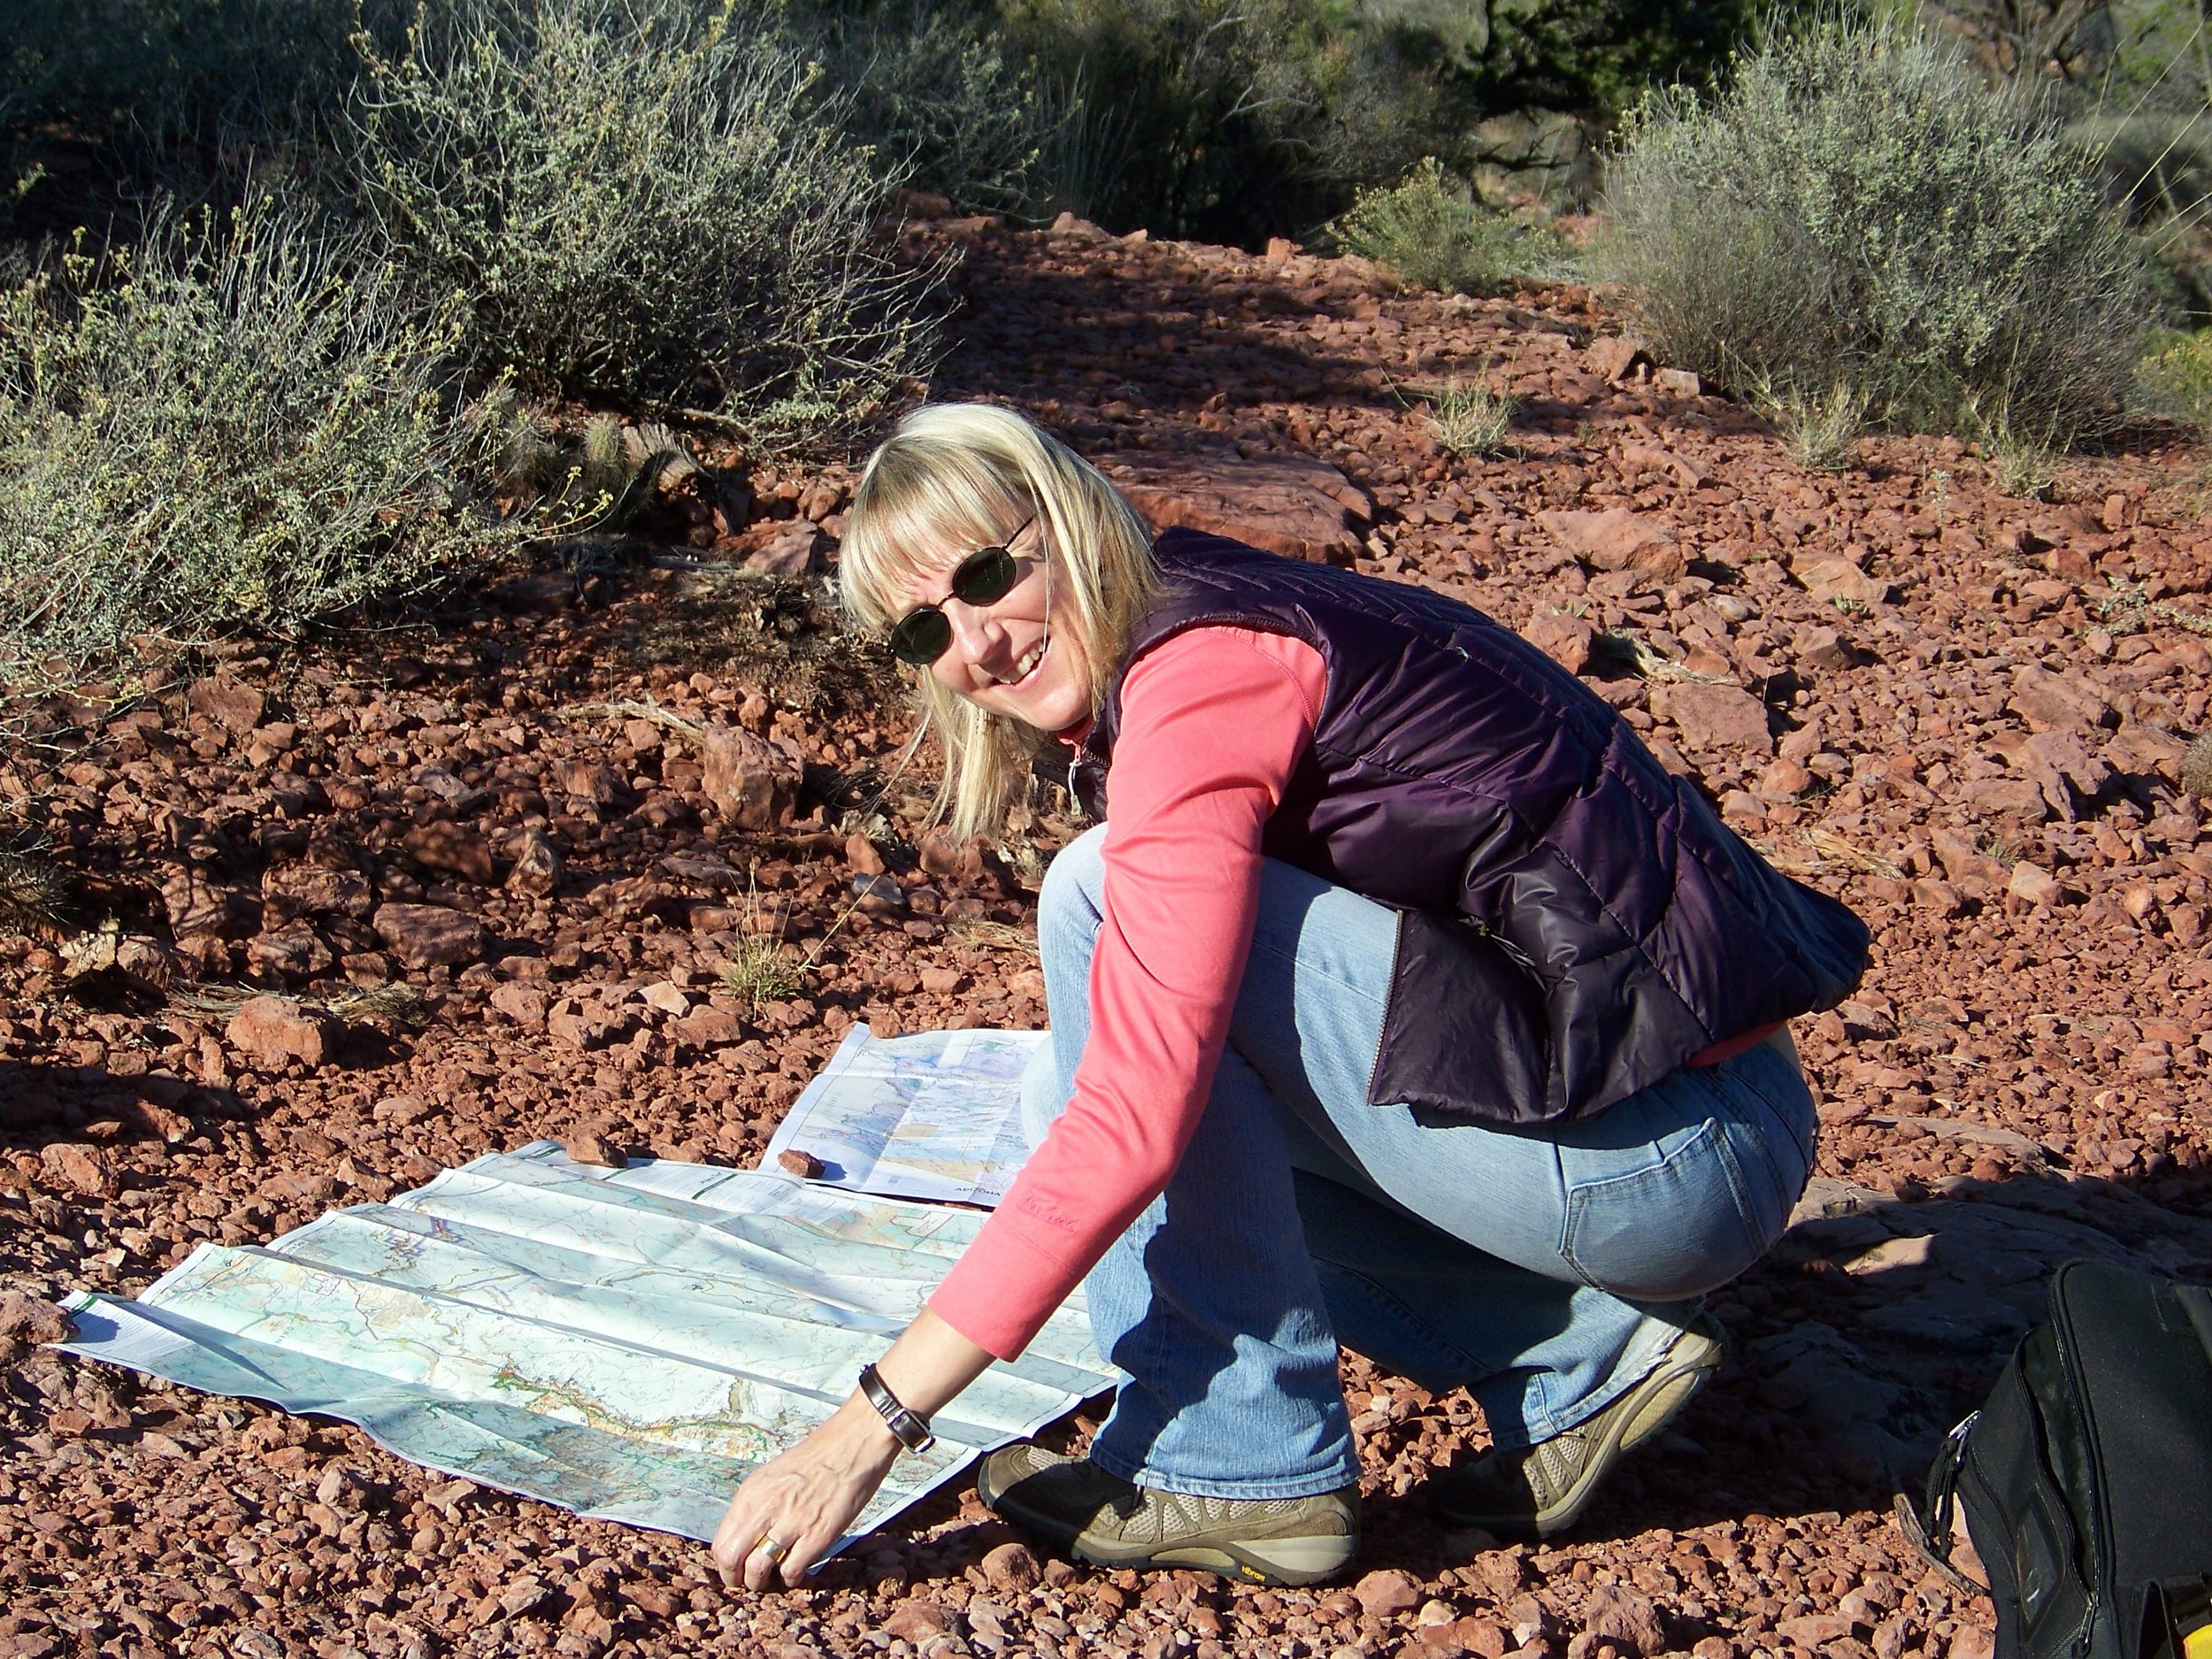 Carrie Ann leading an Immersion/Retreat Sedona & Verde Valley 2016 Dowsing energy across landscapes via map